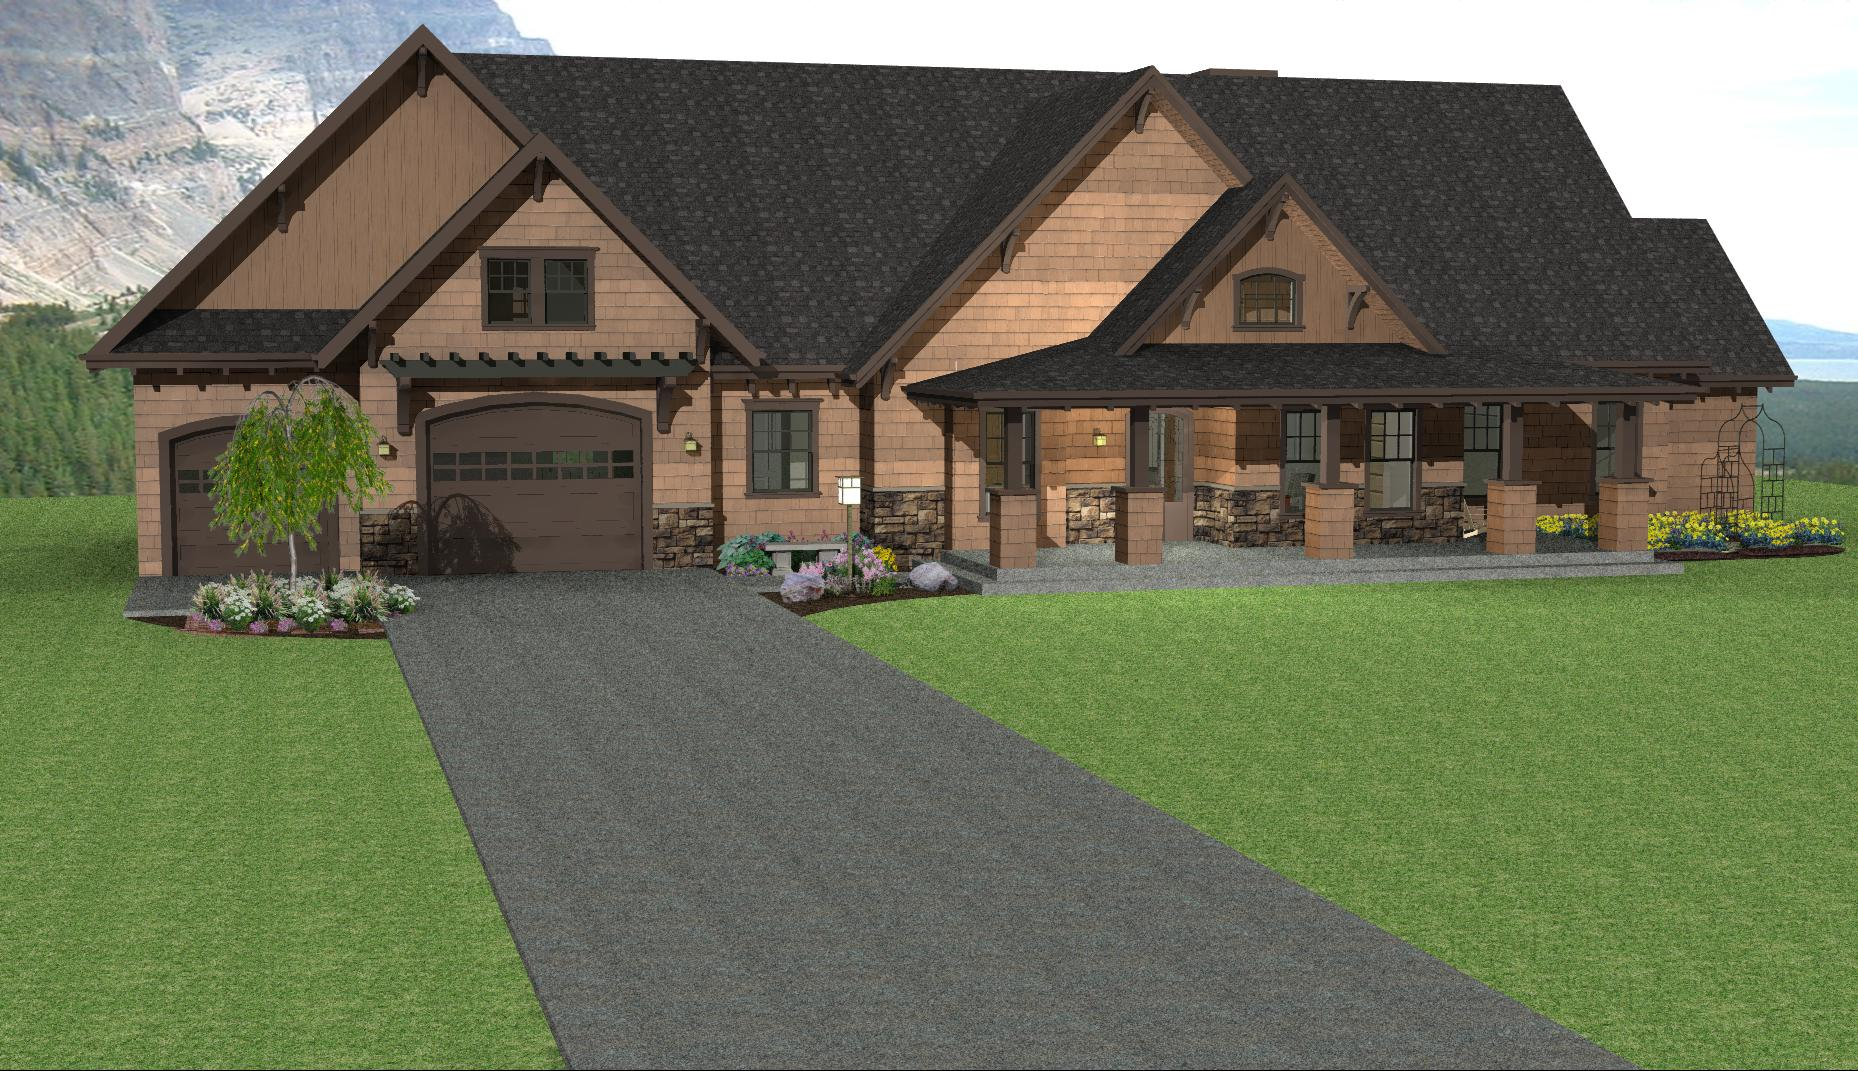 Ranch style home designs find house plans for Rancher style home designs